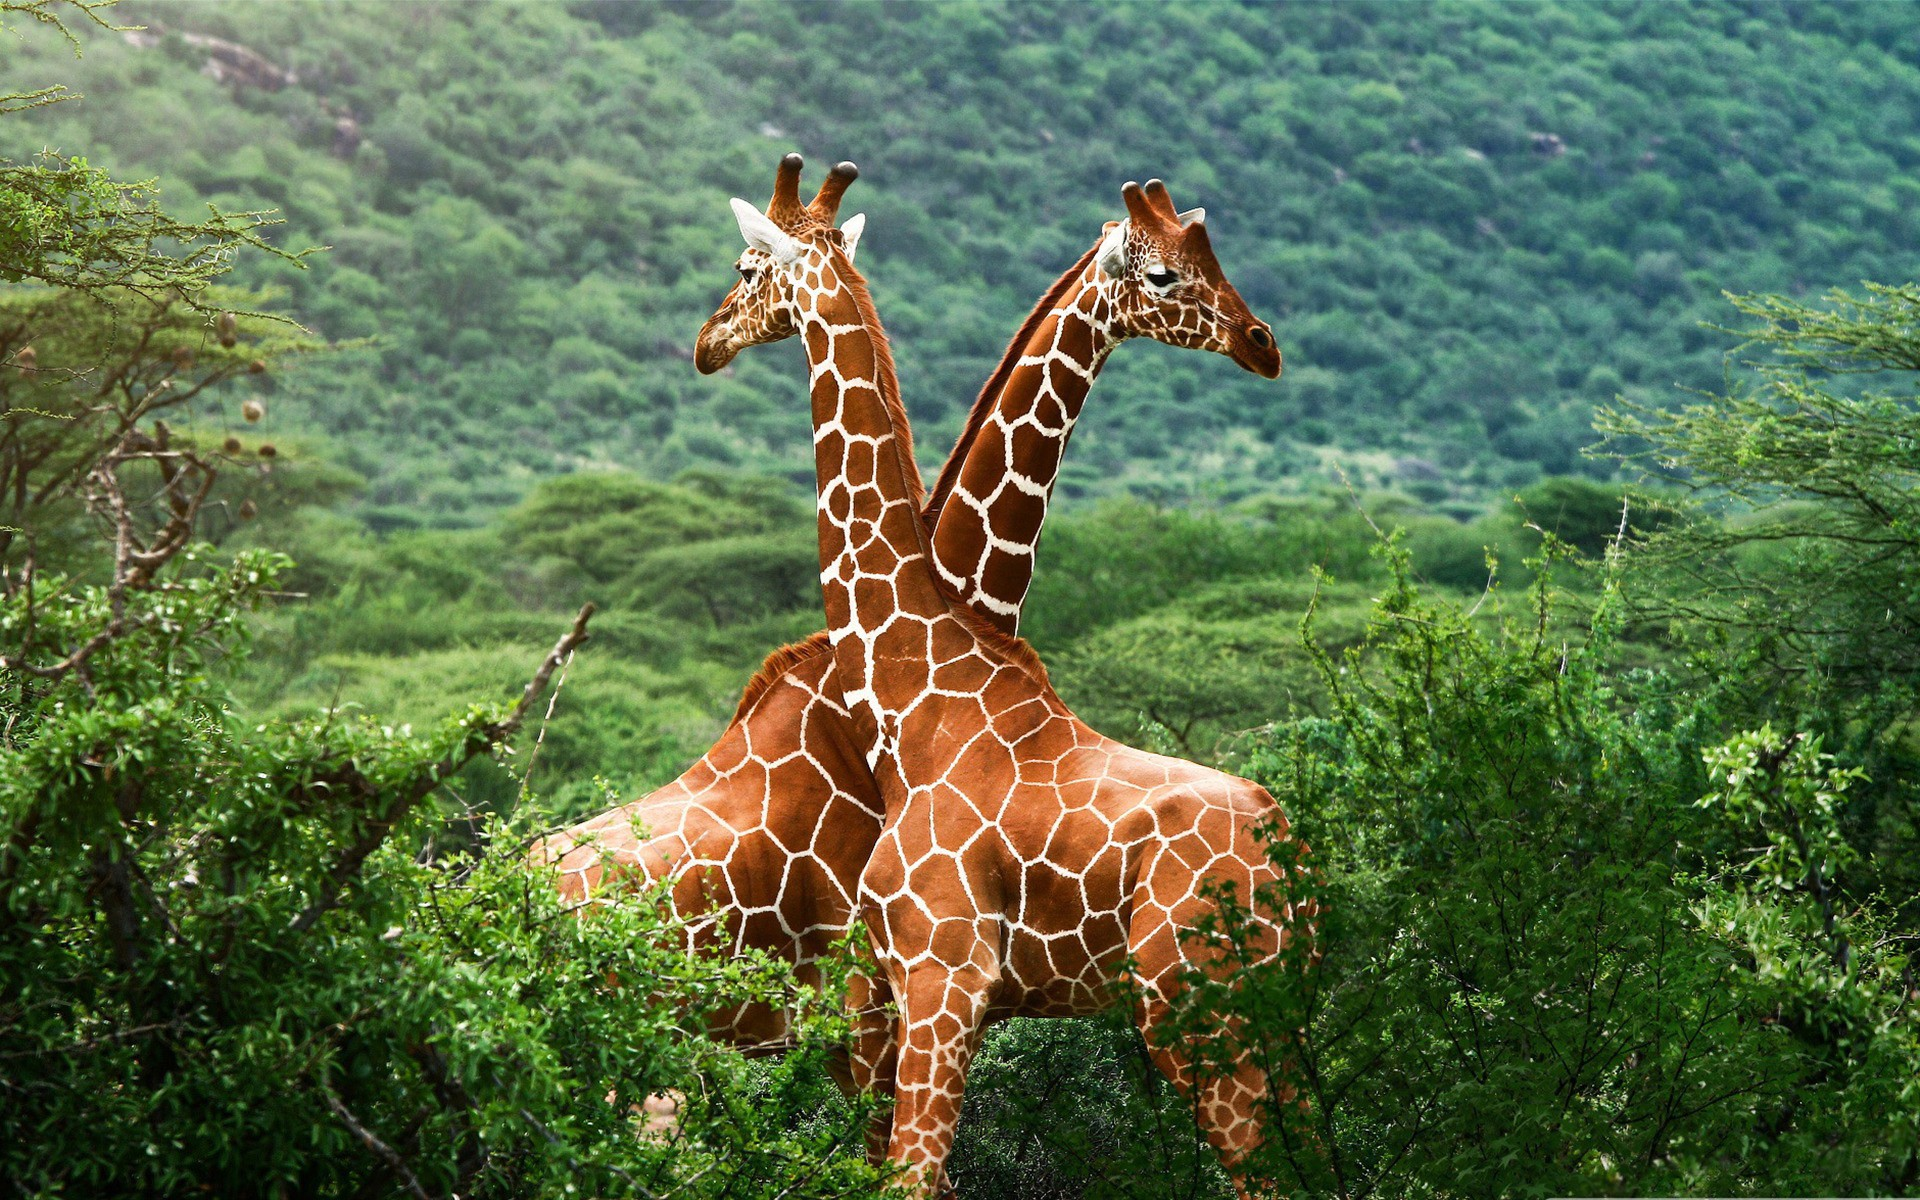 Two Giraffes symbolizing a CVS and IngenioRx / Anthem partnership in the U.S. healthcare industry jungle.